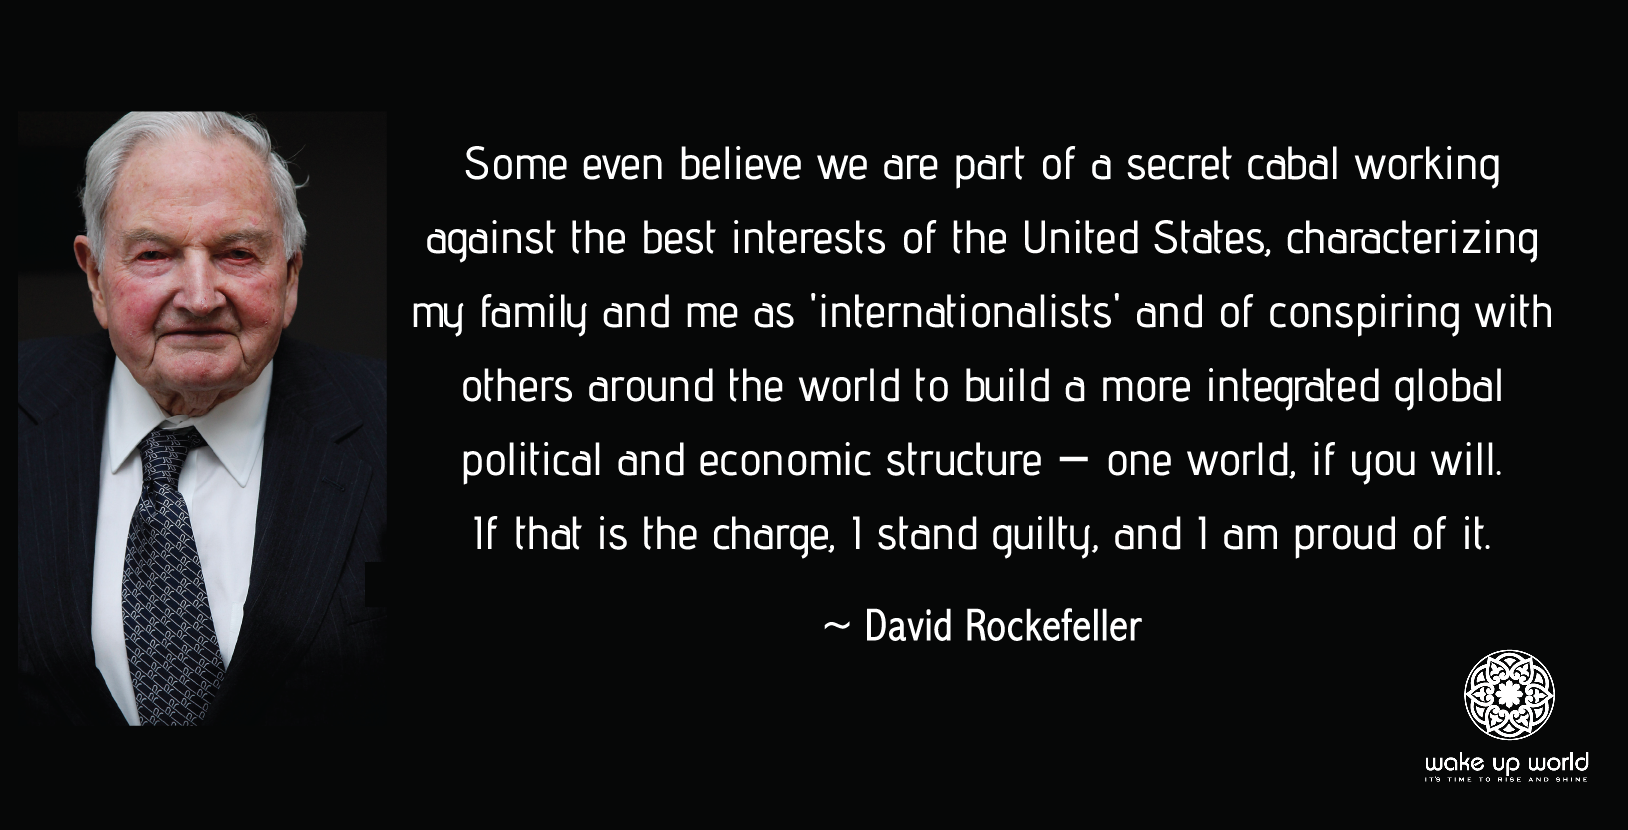 A-Brief-History-of-the-Rockefeller-Rothschild-Empires-New-World-Order-1